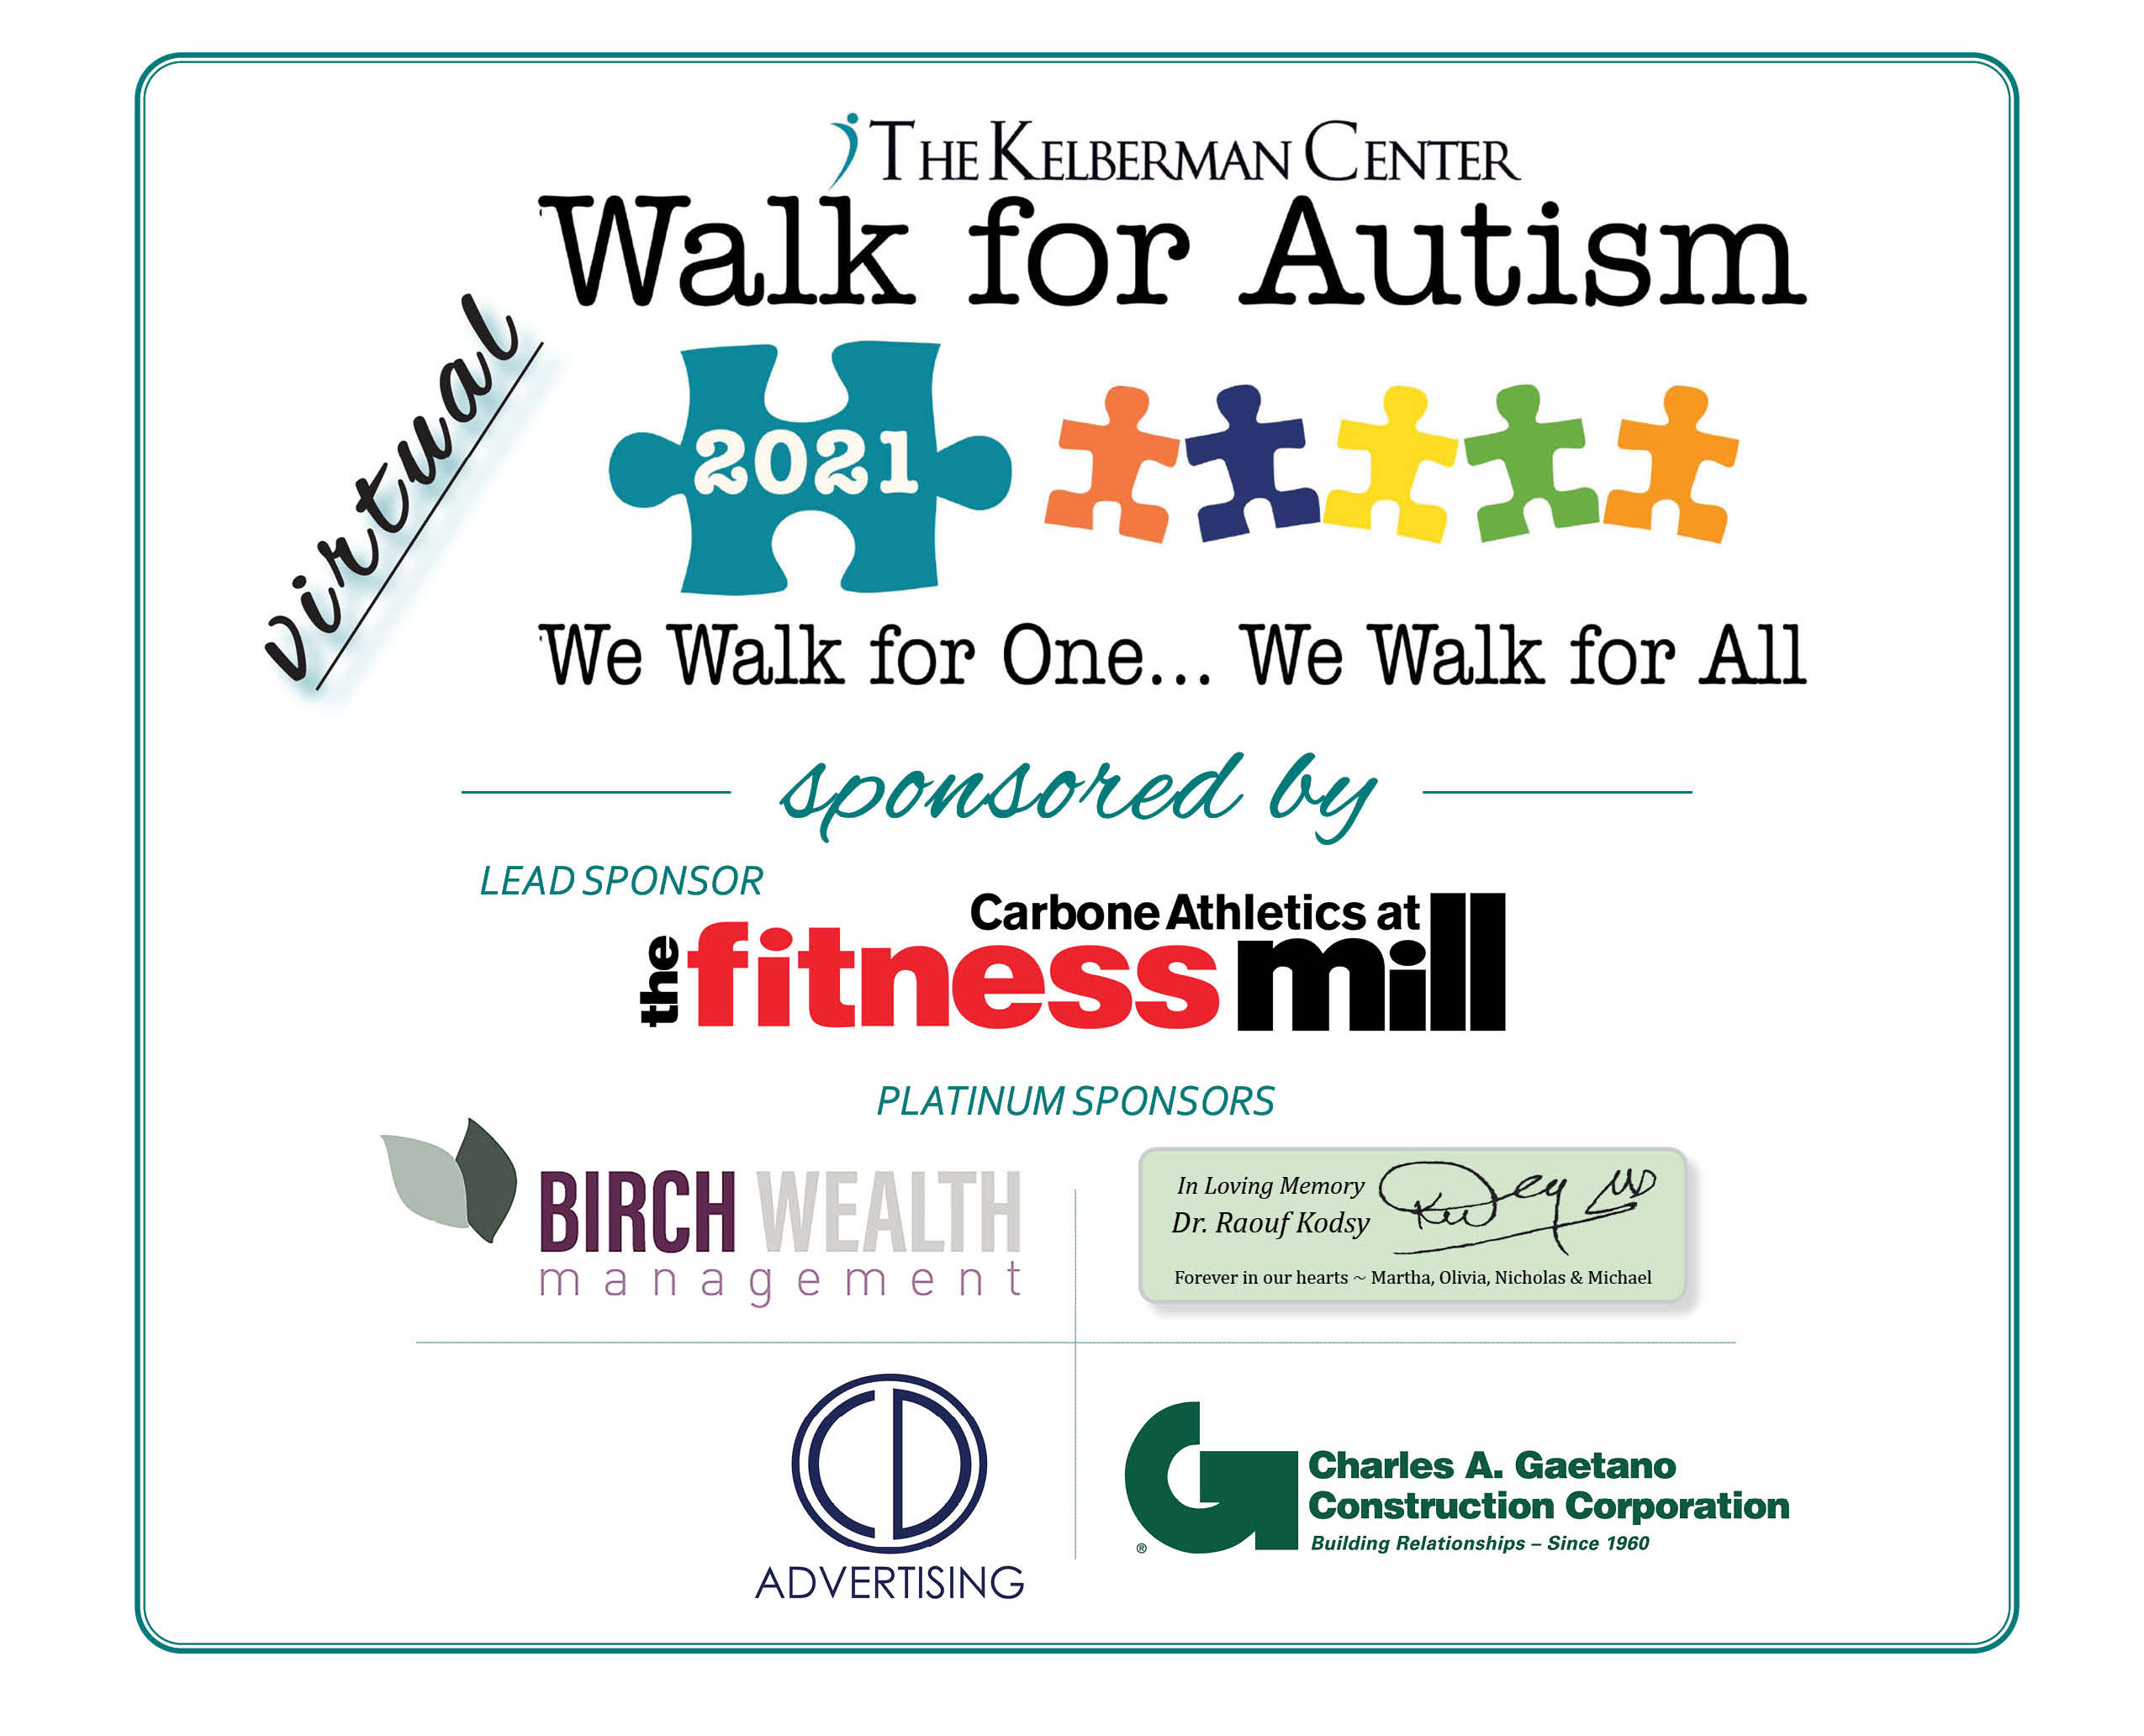 Support The Kelberman Center During Autism Awareness Month!